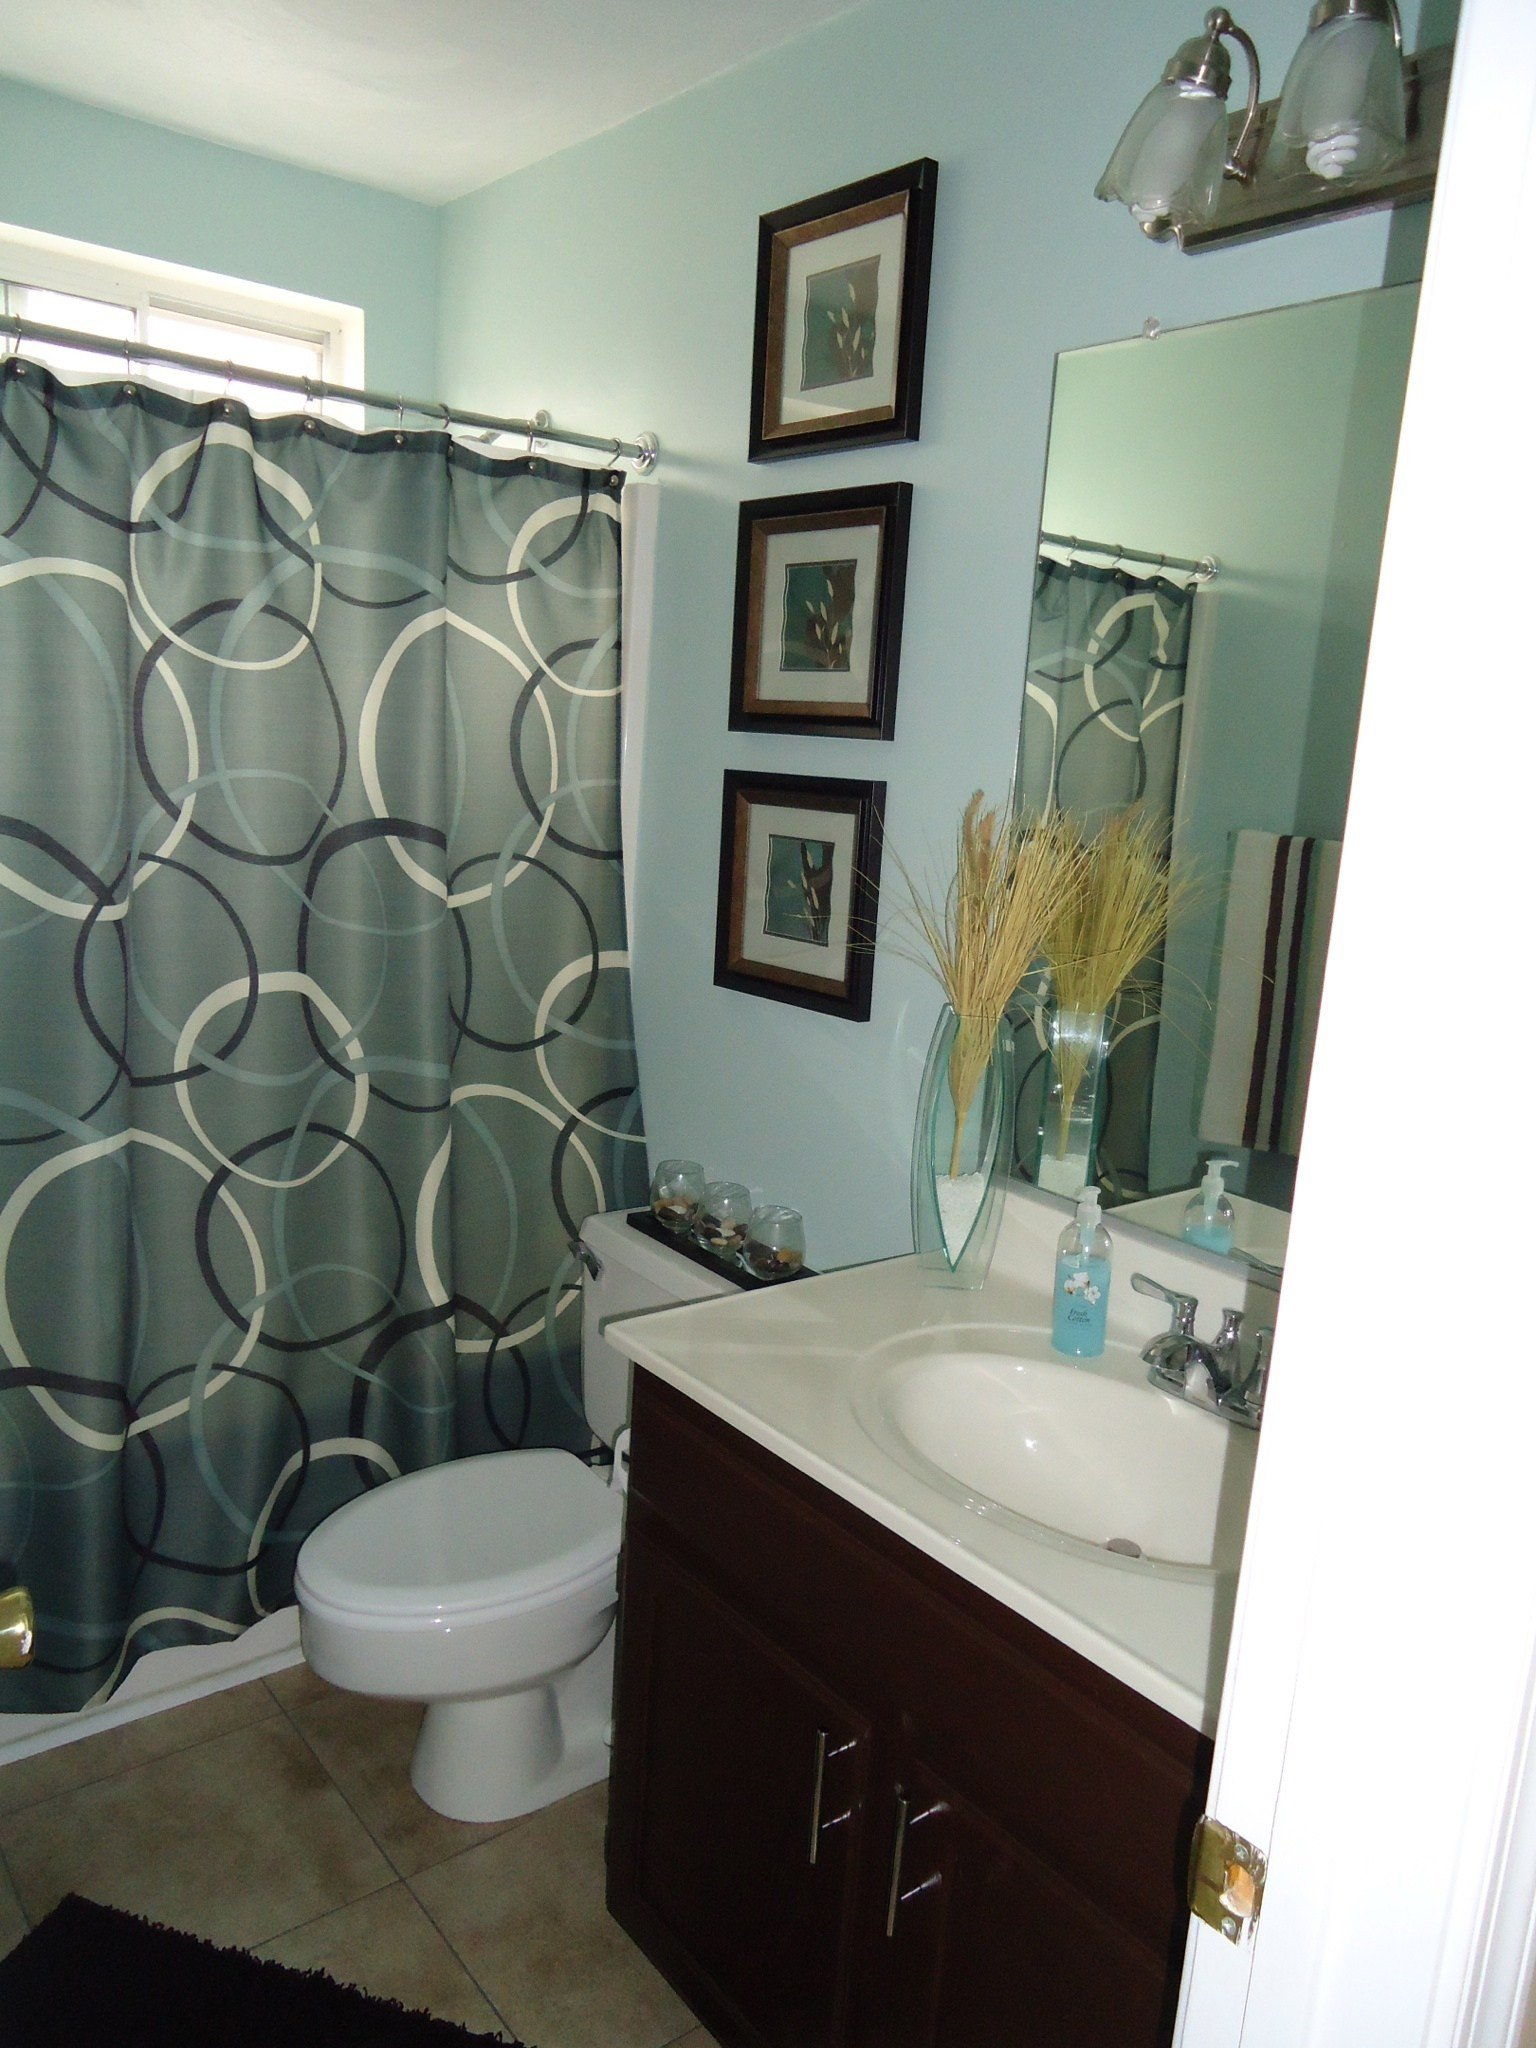 Red and Brown Bathroom Decor Luxury 99 Excelent Red and Brown Bathroom Accessories Image Ideas